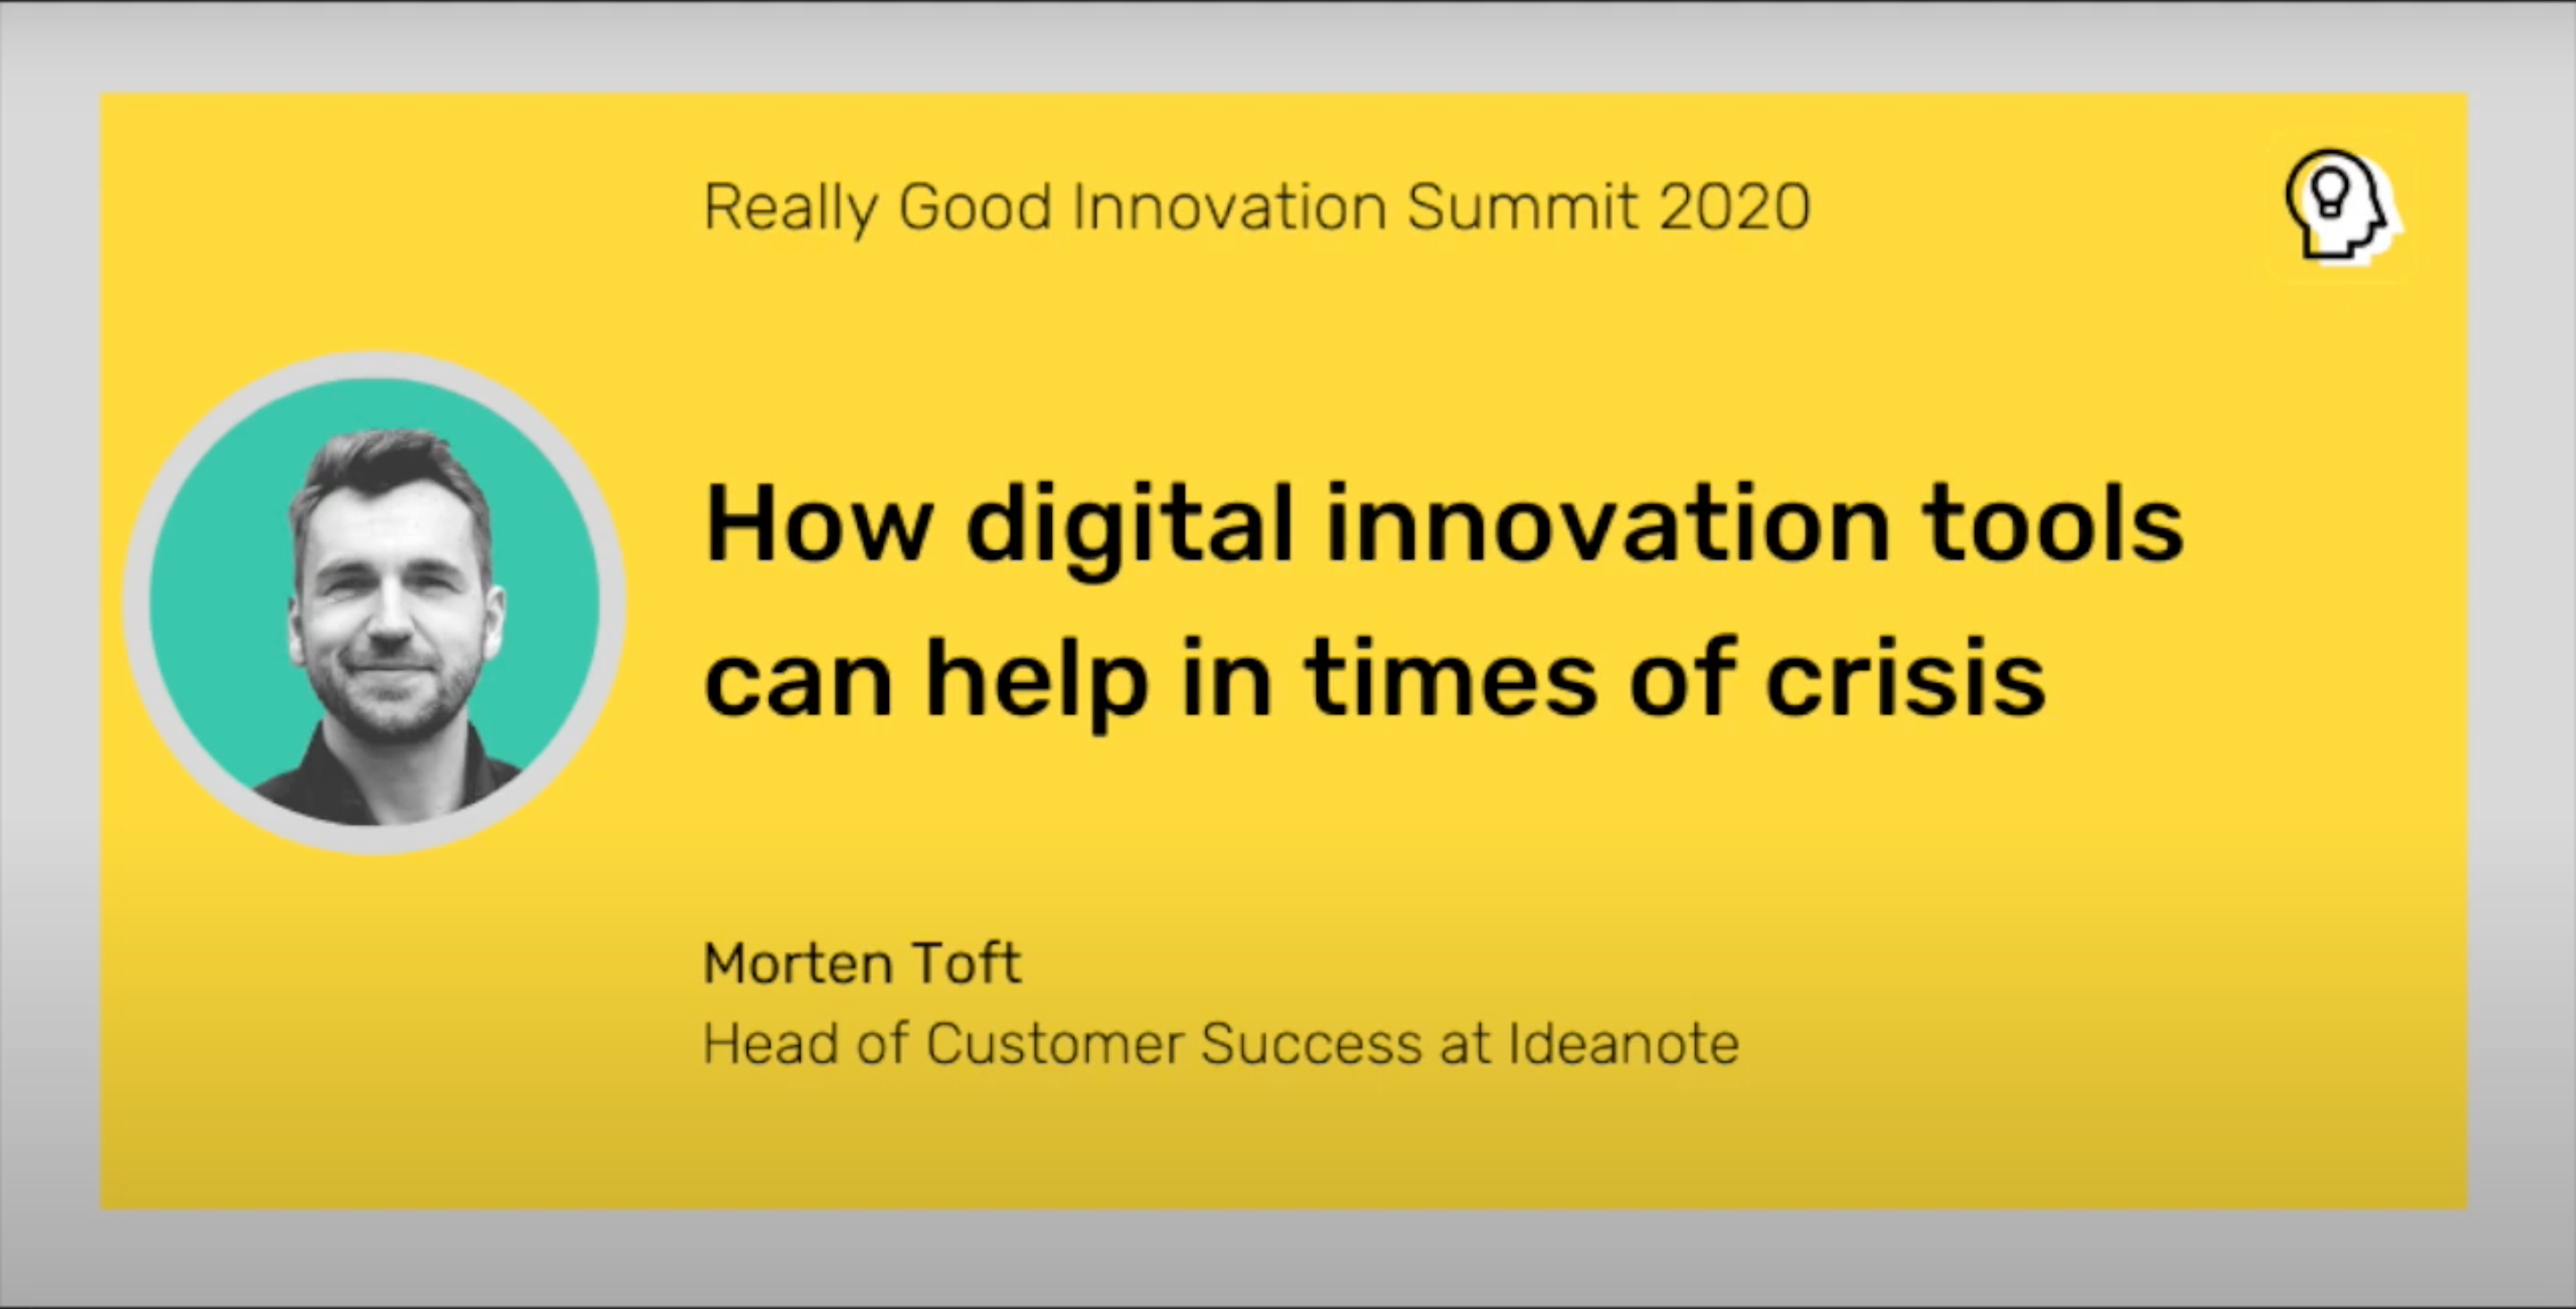 How digital innovation tools can help in times of crisis